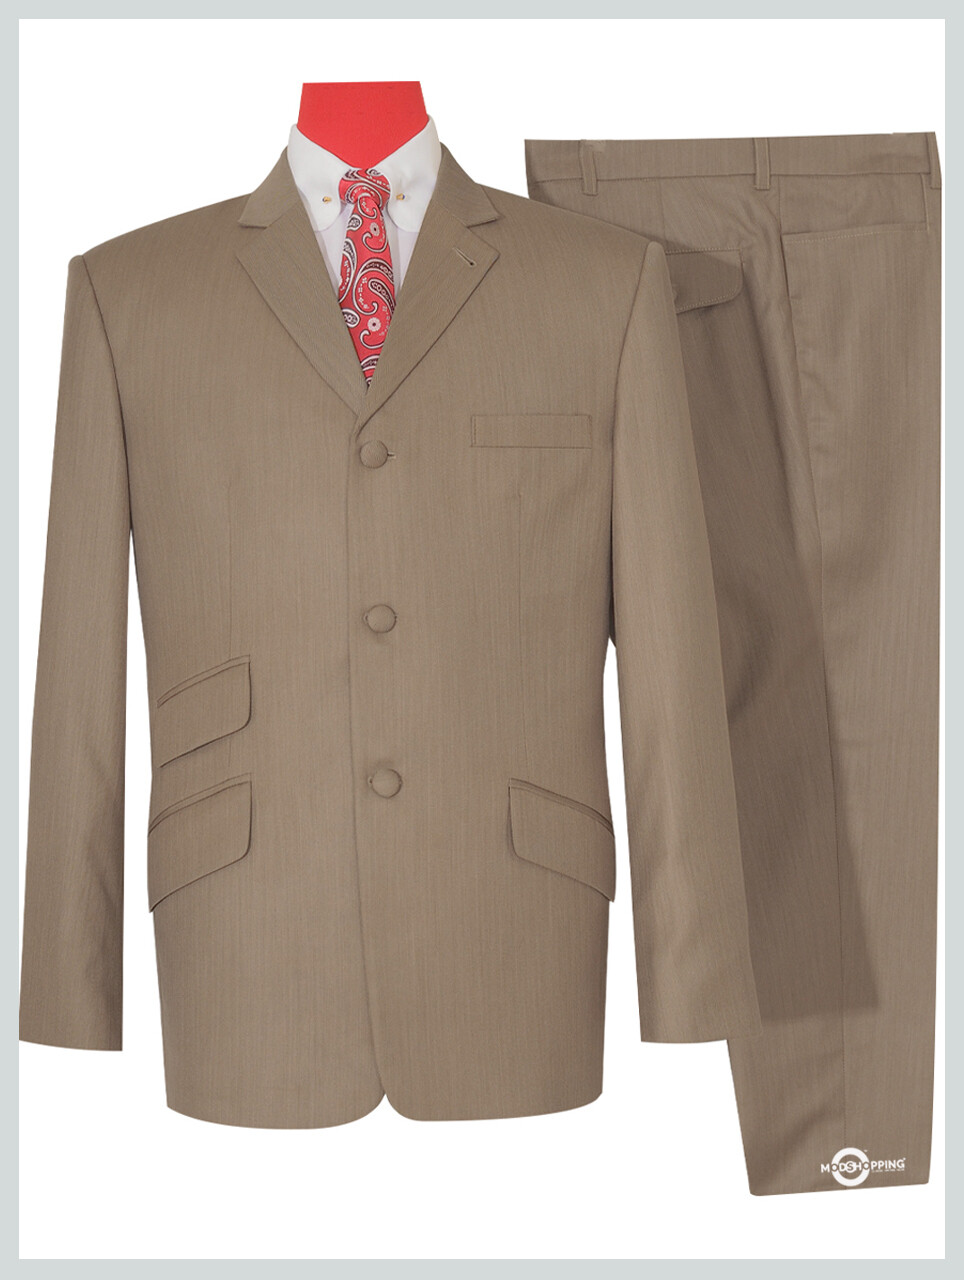 Herringbone Tailored Retro Light Brown Mod Suit